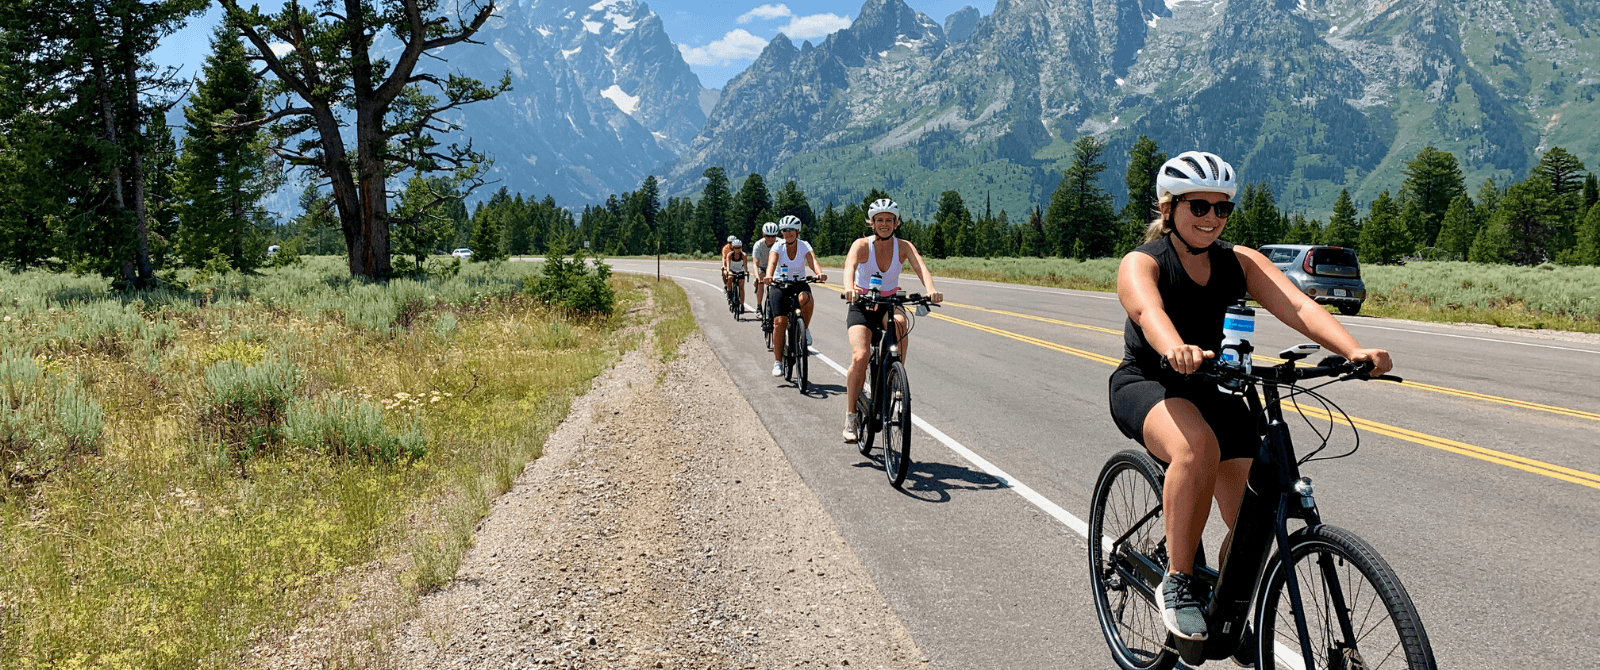 Semi-private bike tours & adventure vacations